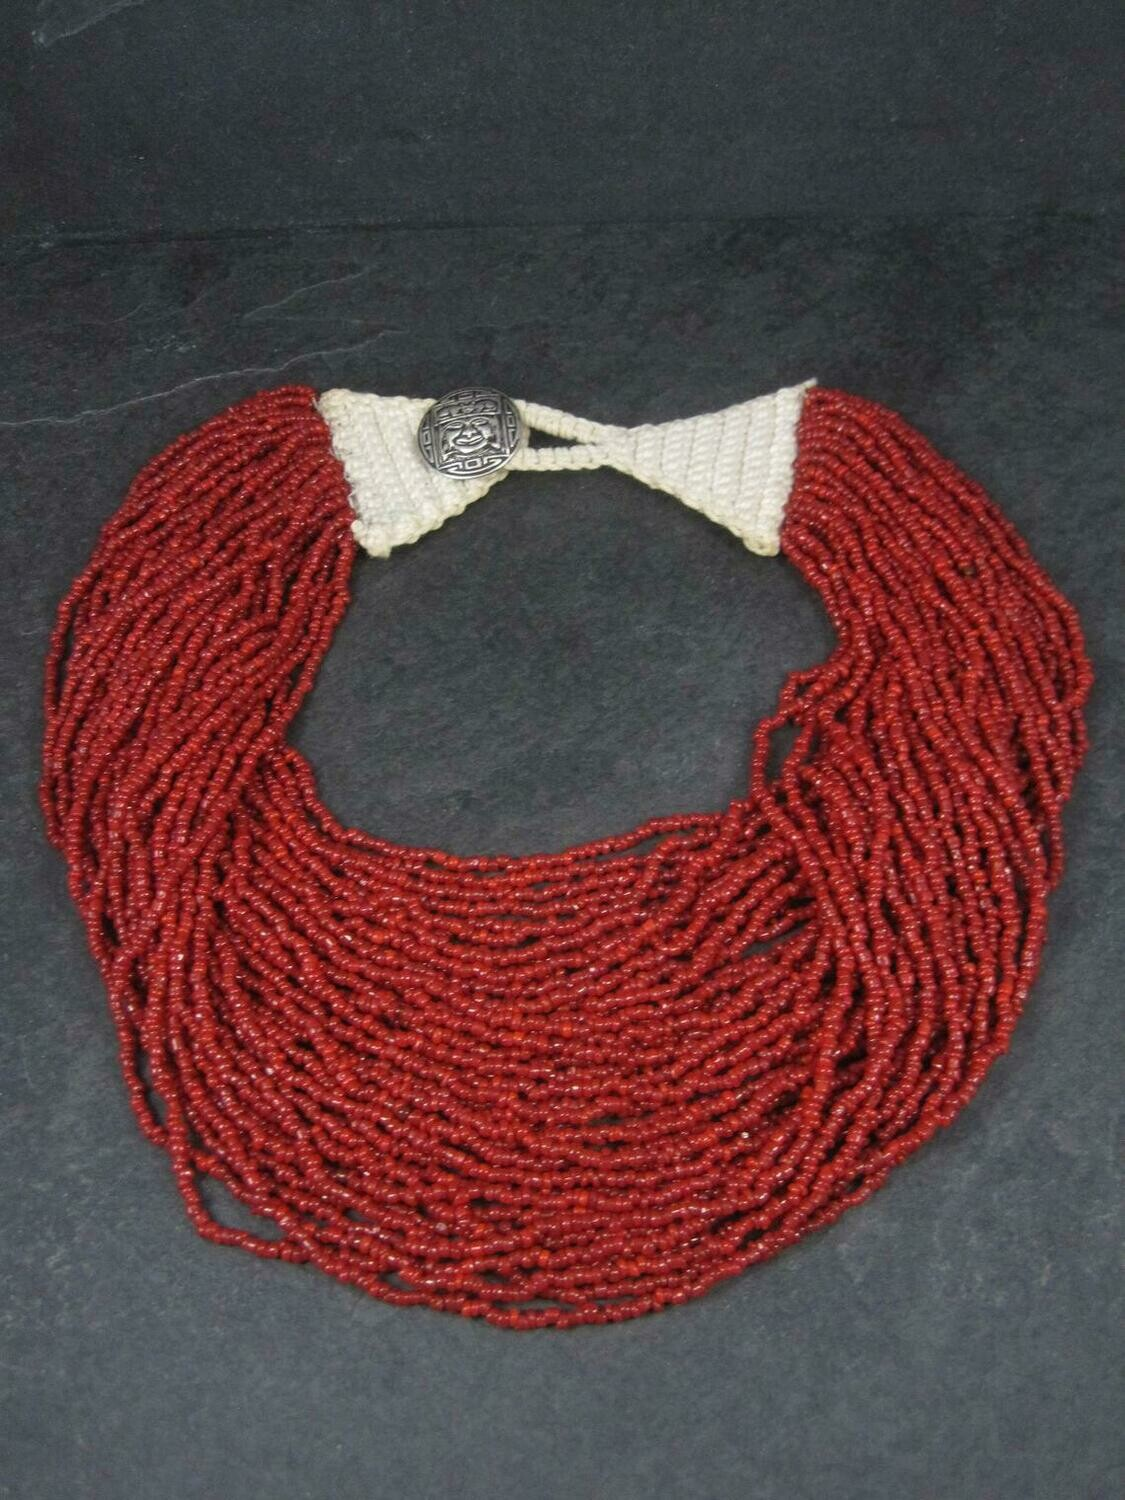 Southwestern Estate 40 Strand Coral Bead Necklace 20.5 Inches